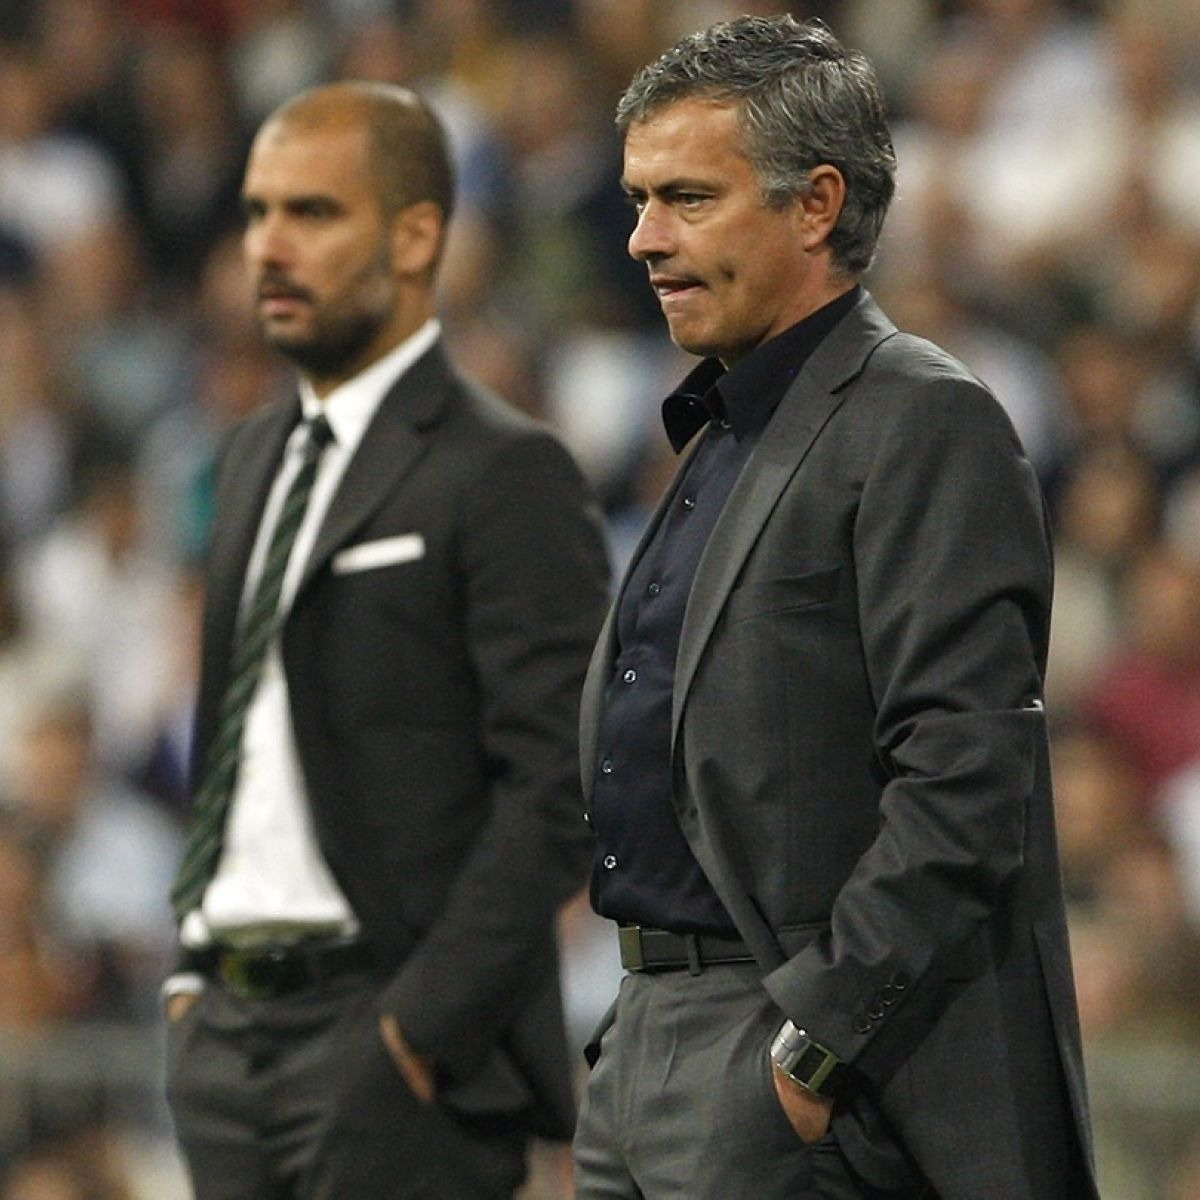 Jose Mourinho And Pep Guardiola Rivalry To Define Era In Manchester